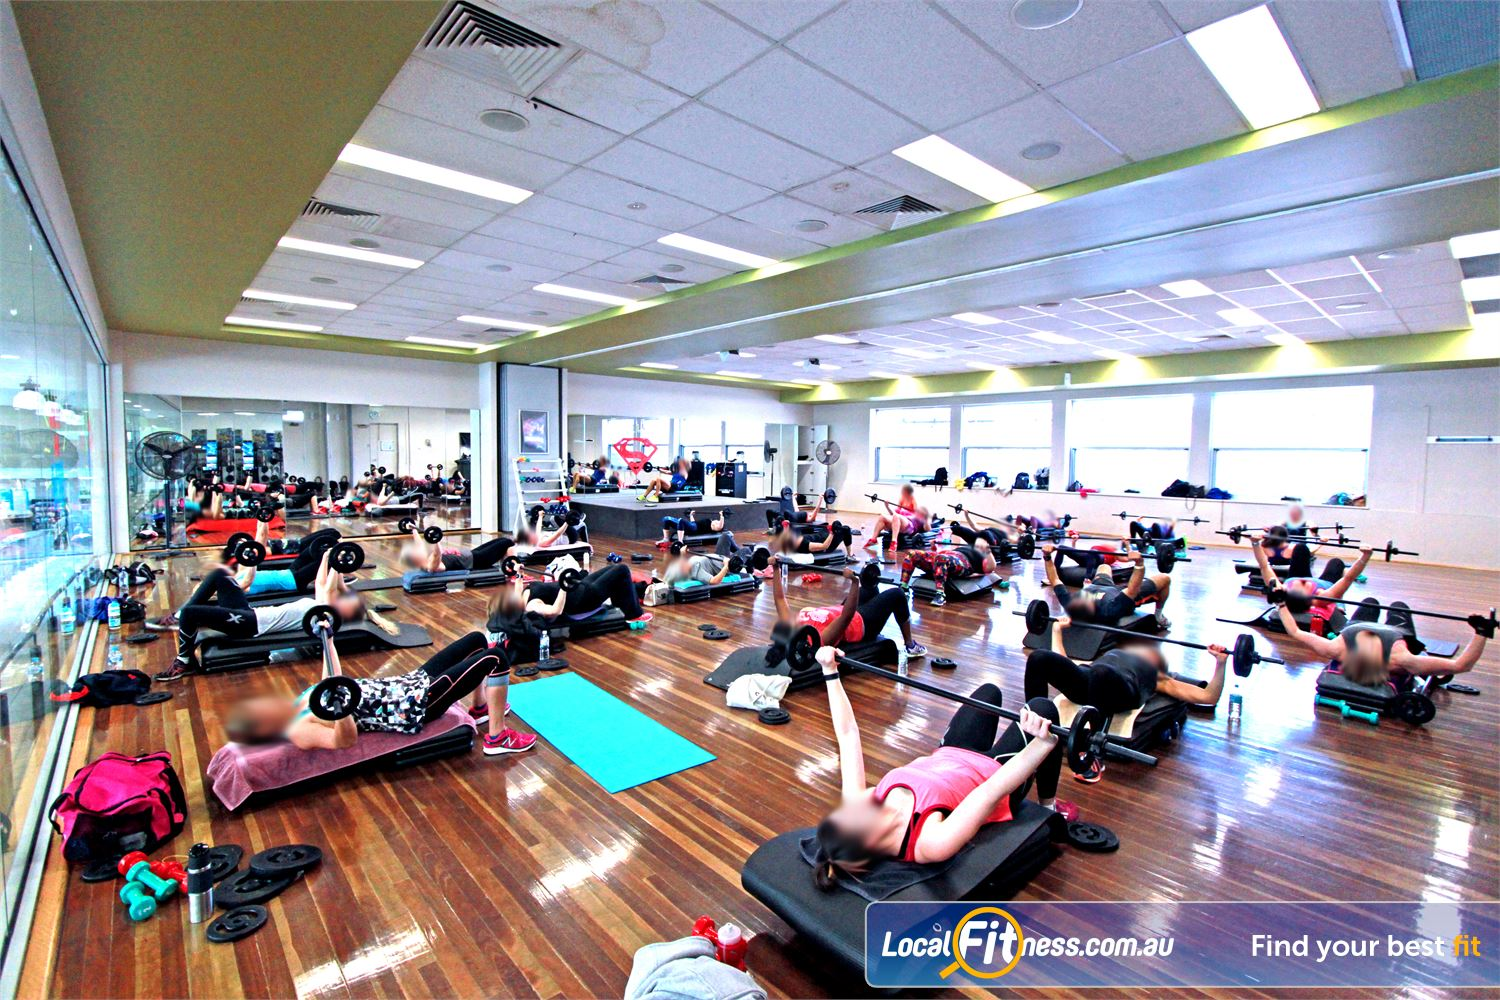 Casey Arc Near Berwick Over 90 classes per week inc. Narre Warren Yoga, Pilates, Zumba and more.